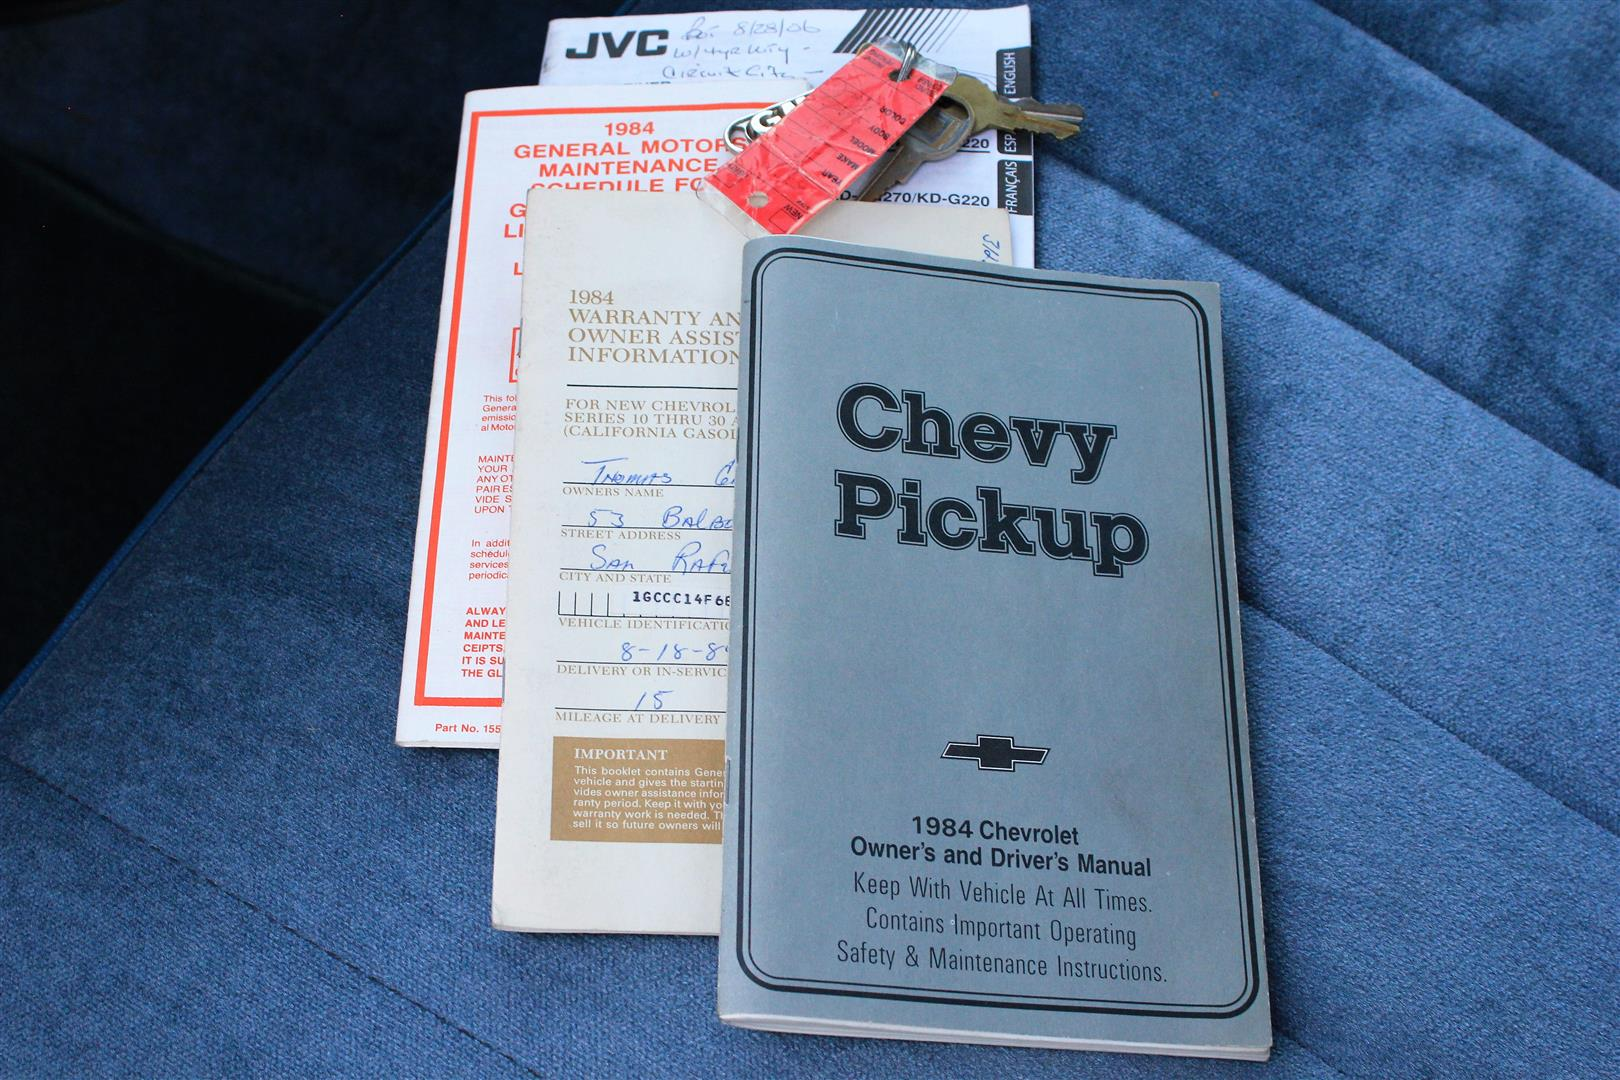 1983 C10 Chevy Silverado Manual - Complete Wiring Diagrams •